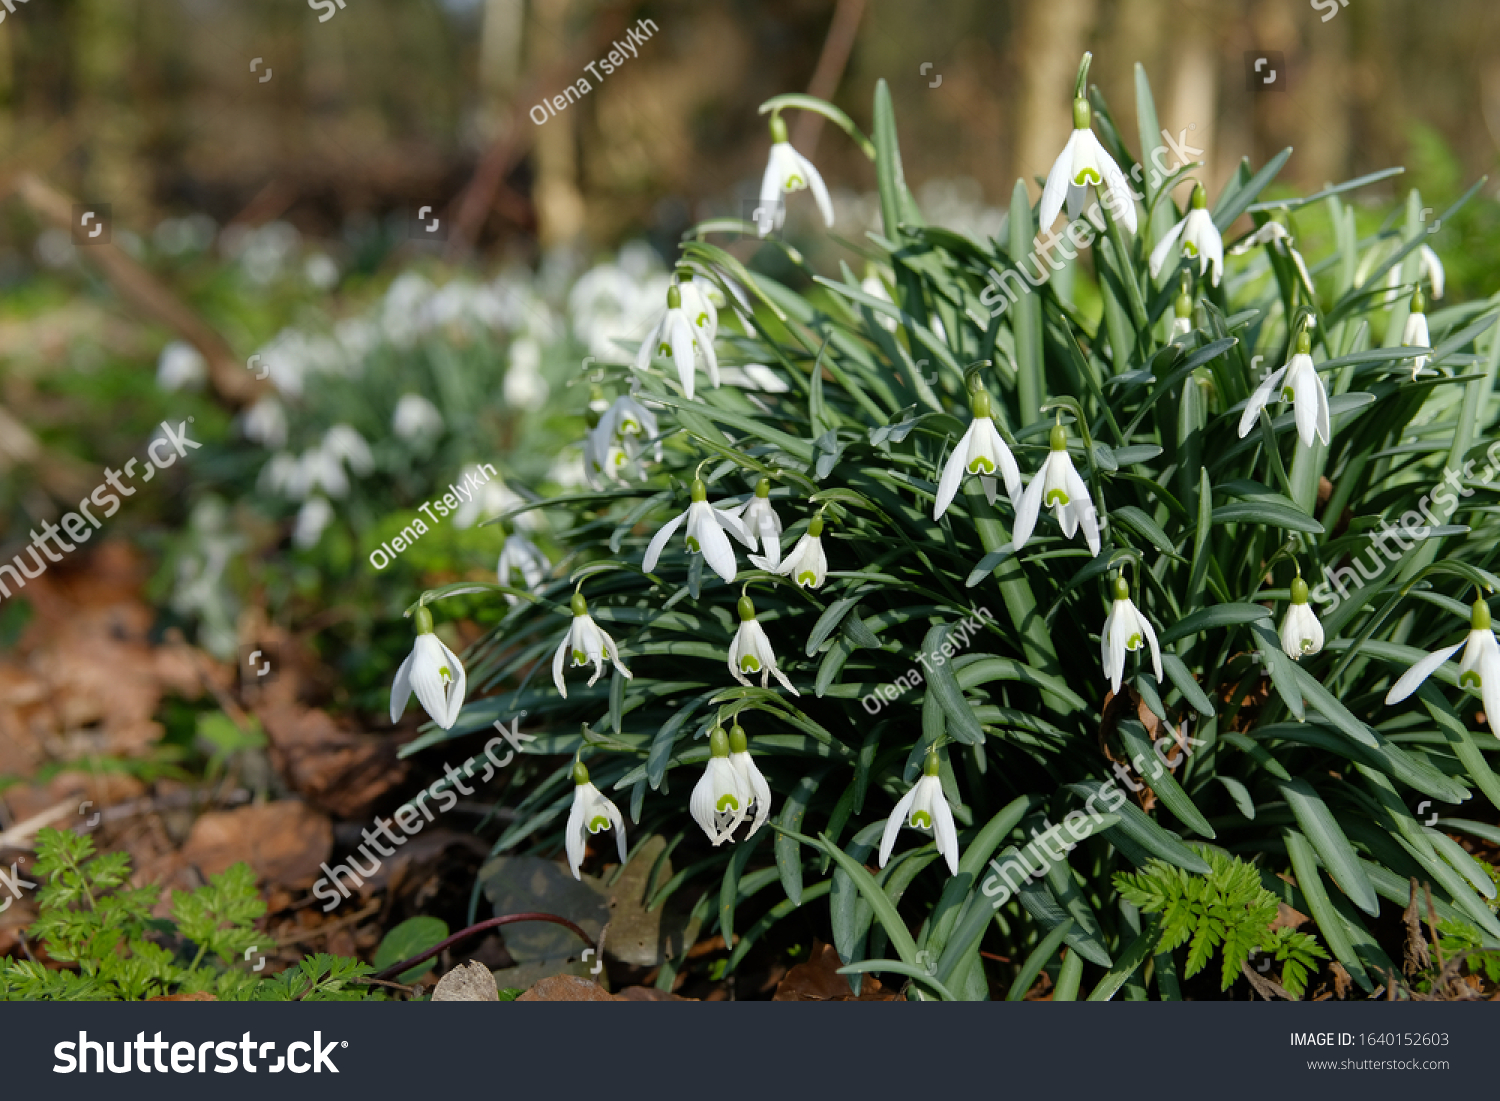 White spring snowdrops. Snowdrops field. Galanthus nivalis. Snowdrop spring flowers. Snowdrop or Galanthus. Spring flower snowdrop is the first flower in the end of winter and the beginning of spring. #1640152603